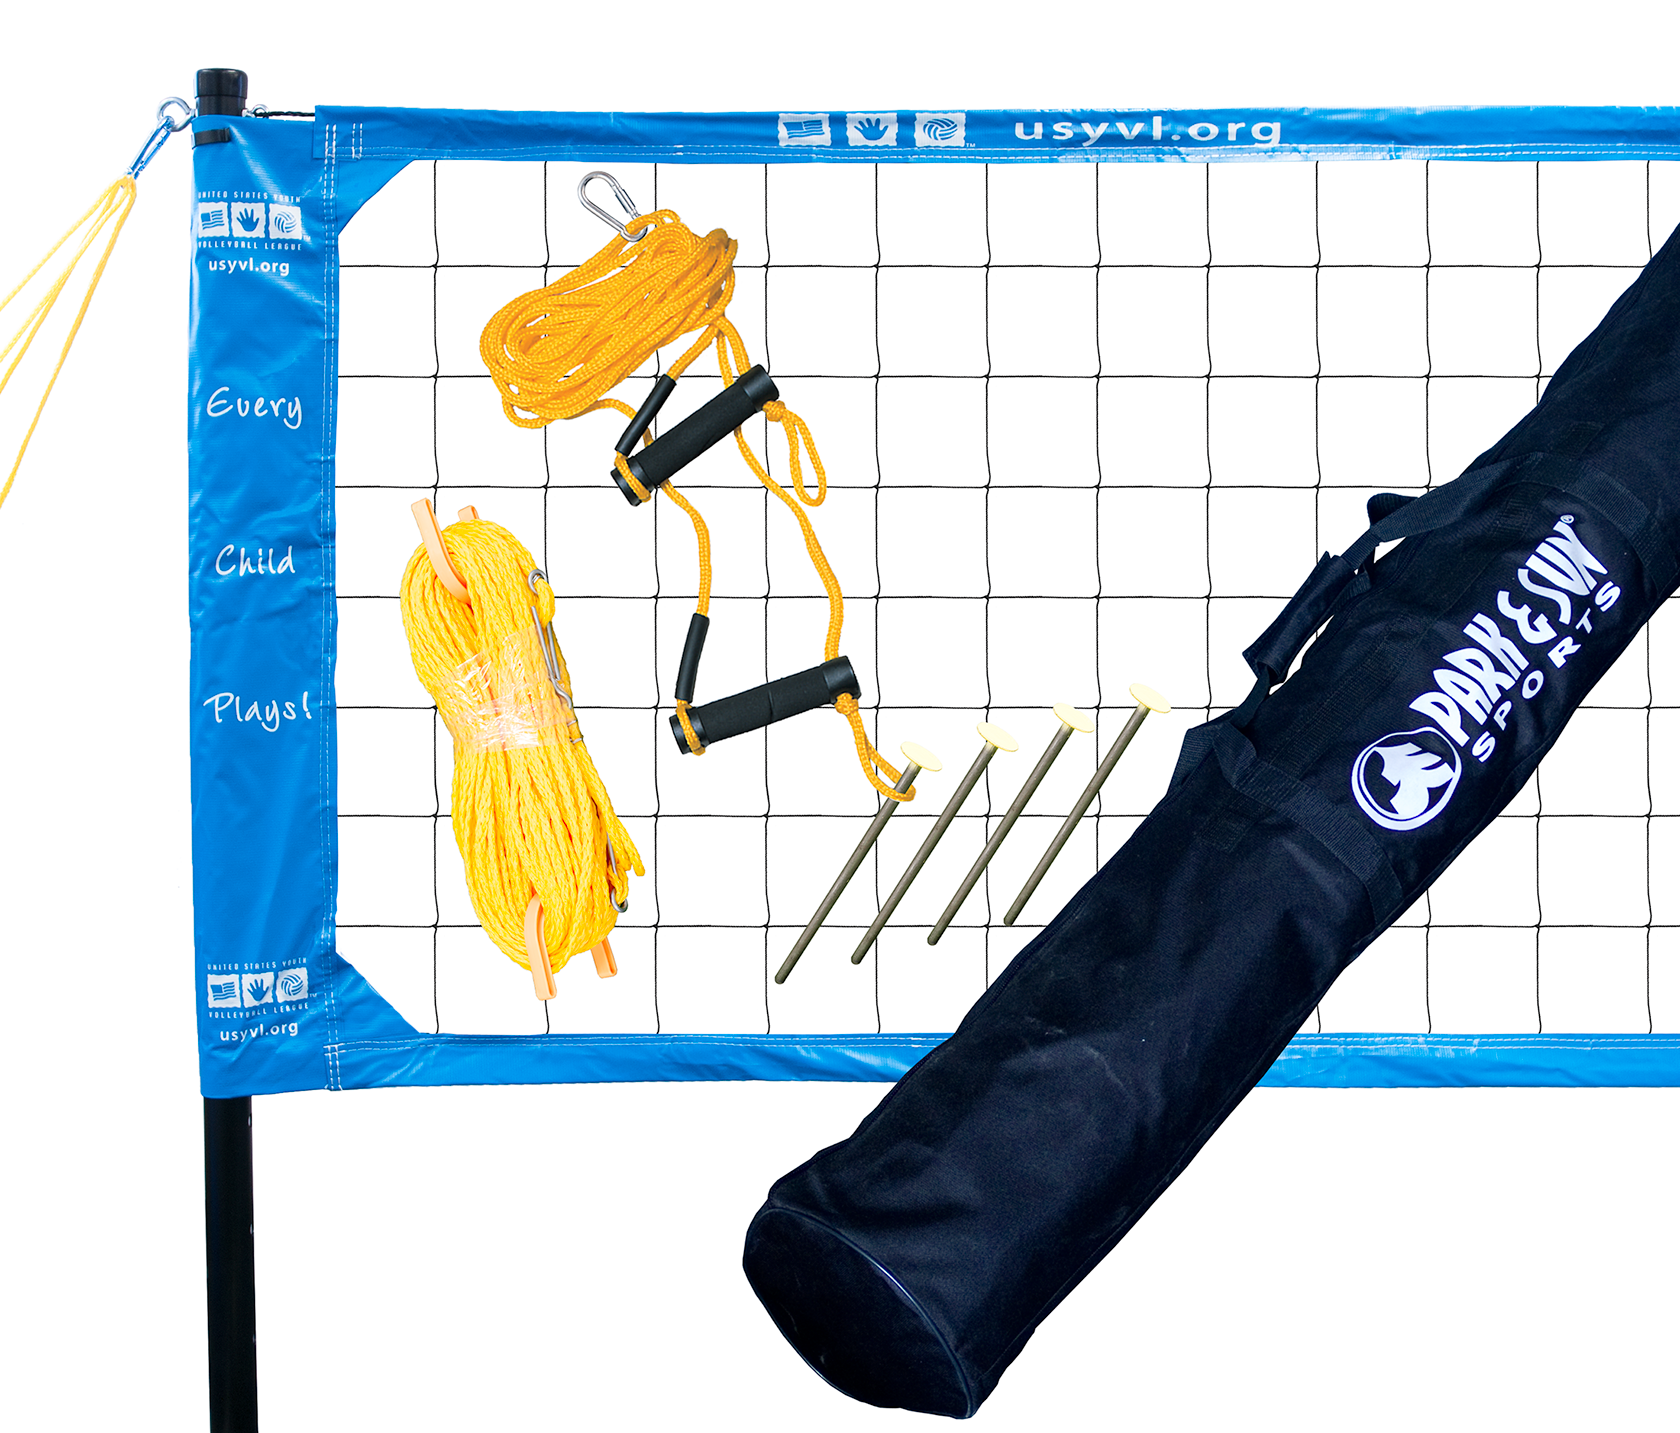 The Spectrum USYVL features our volleyball regulation size Spectrum net, which measures 32' L x 3' H, and is pre-attached to the poles. The net tapes are 2 in. top and bottom with reinforced corners and 6 in. side sleeves, which distributes the net tension evenly from the top to the bottom of the net.